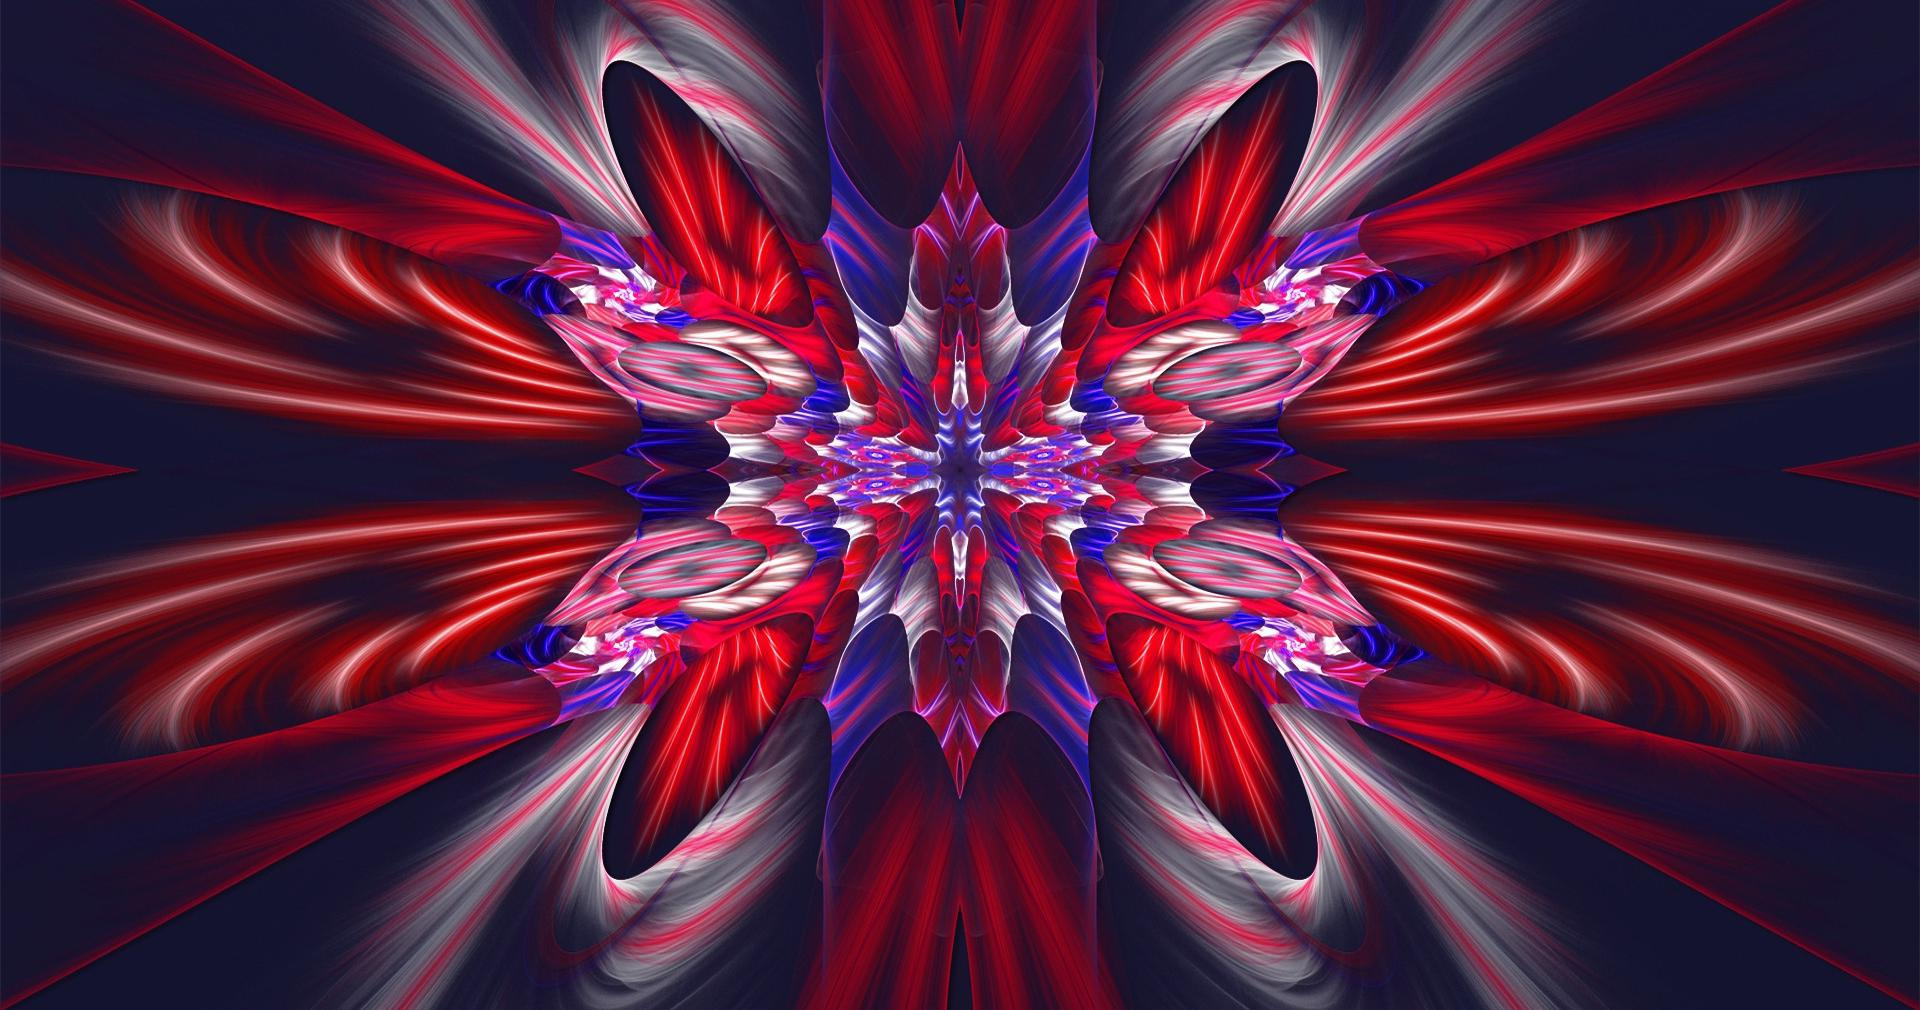 Beautiful red and blue fractal wallpapers HD quality